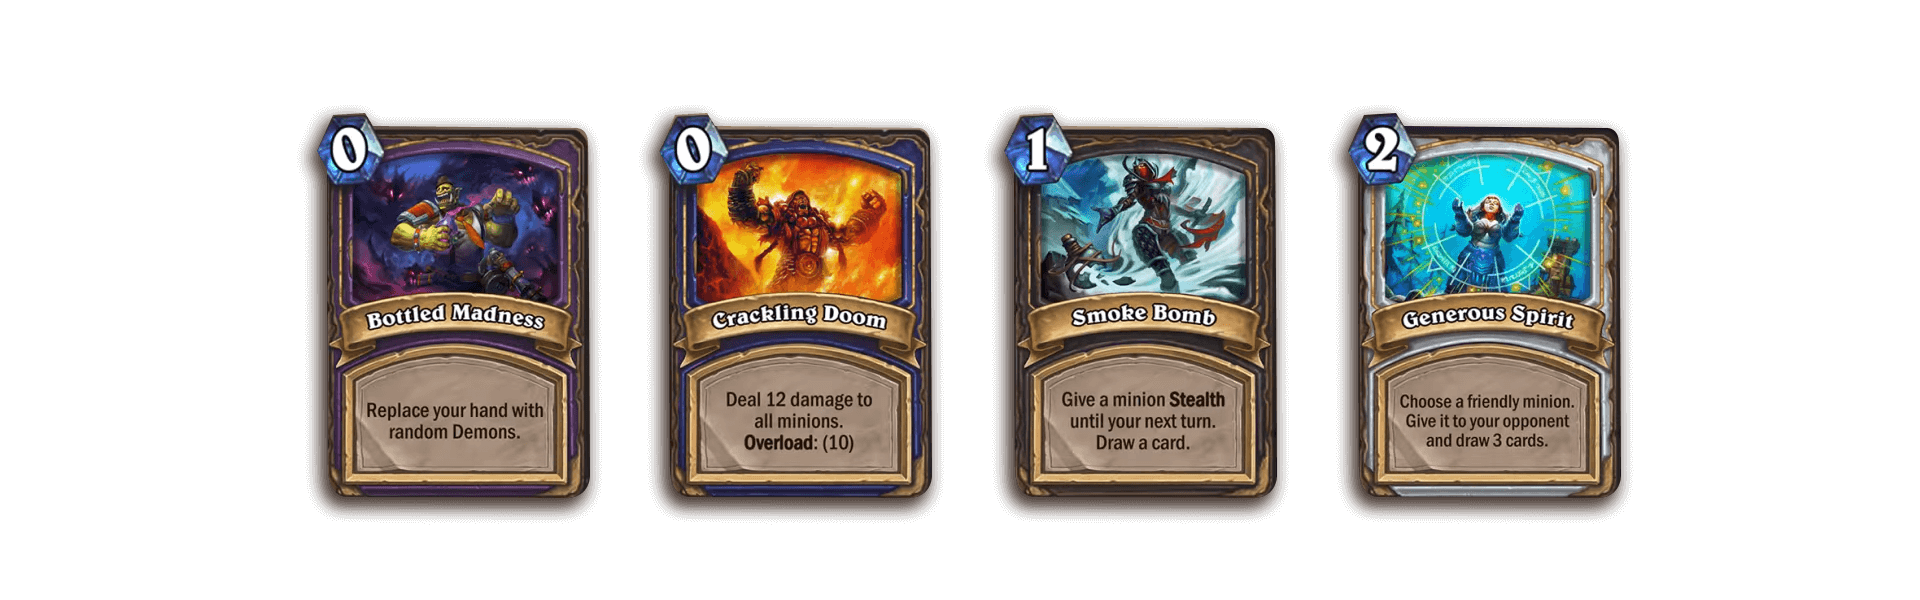 The nine new Hearthstone cards analysed